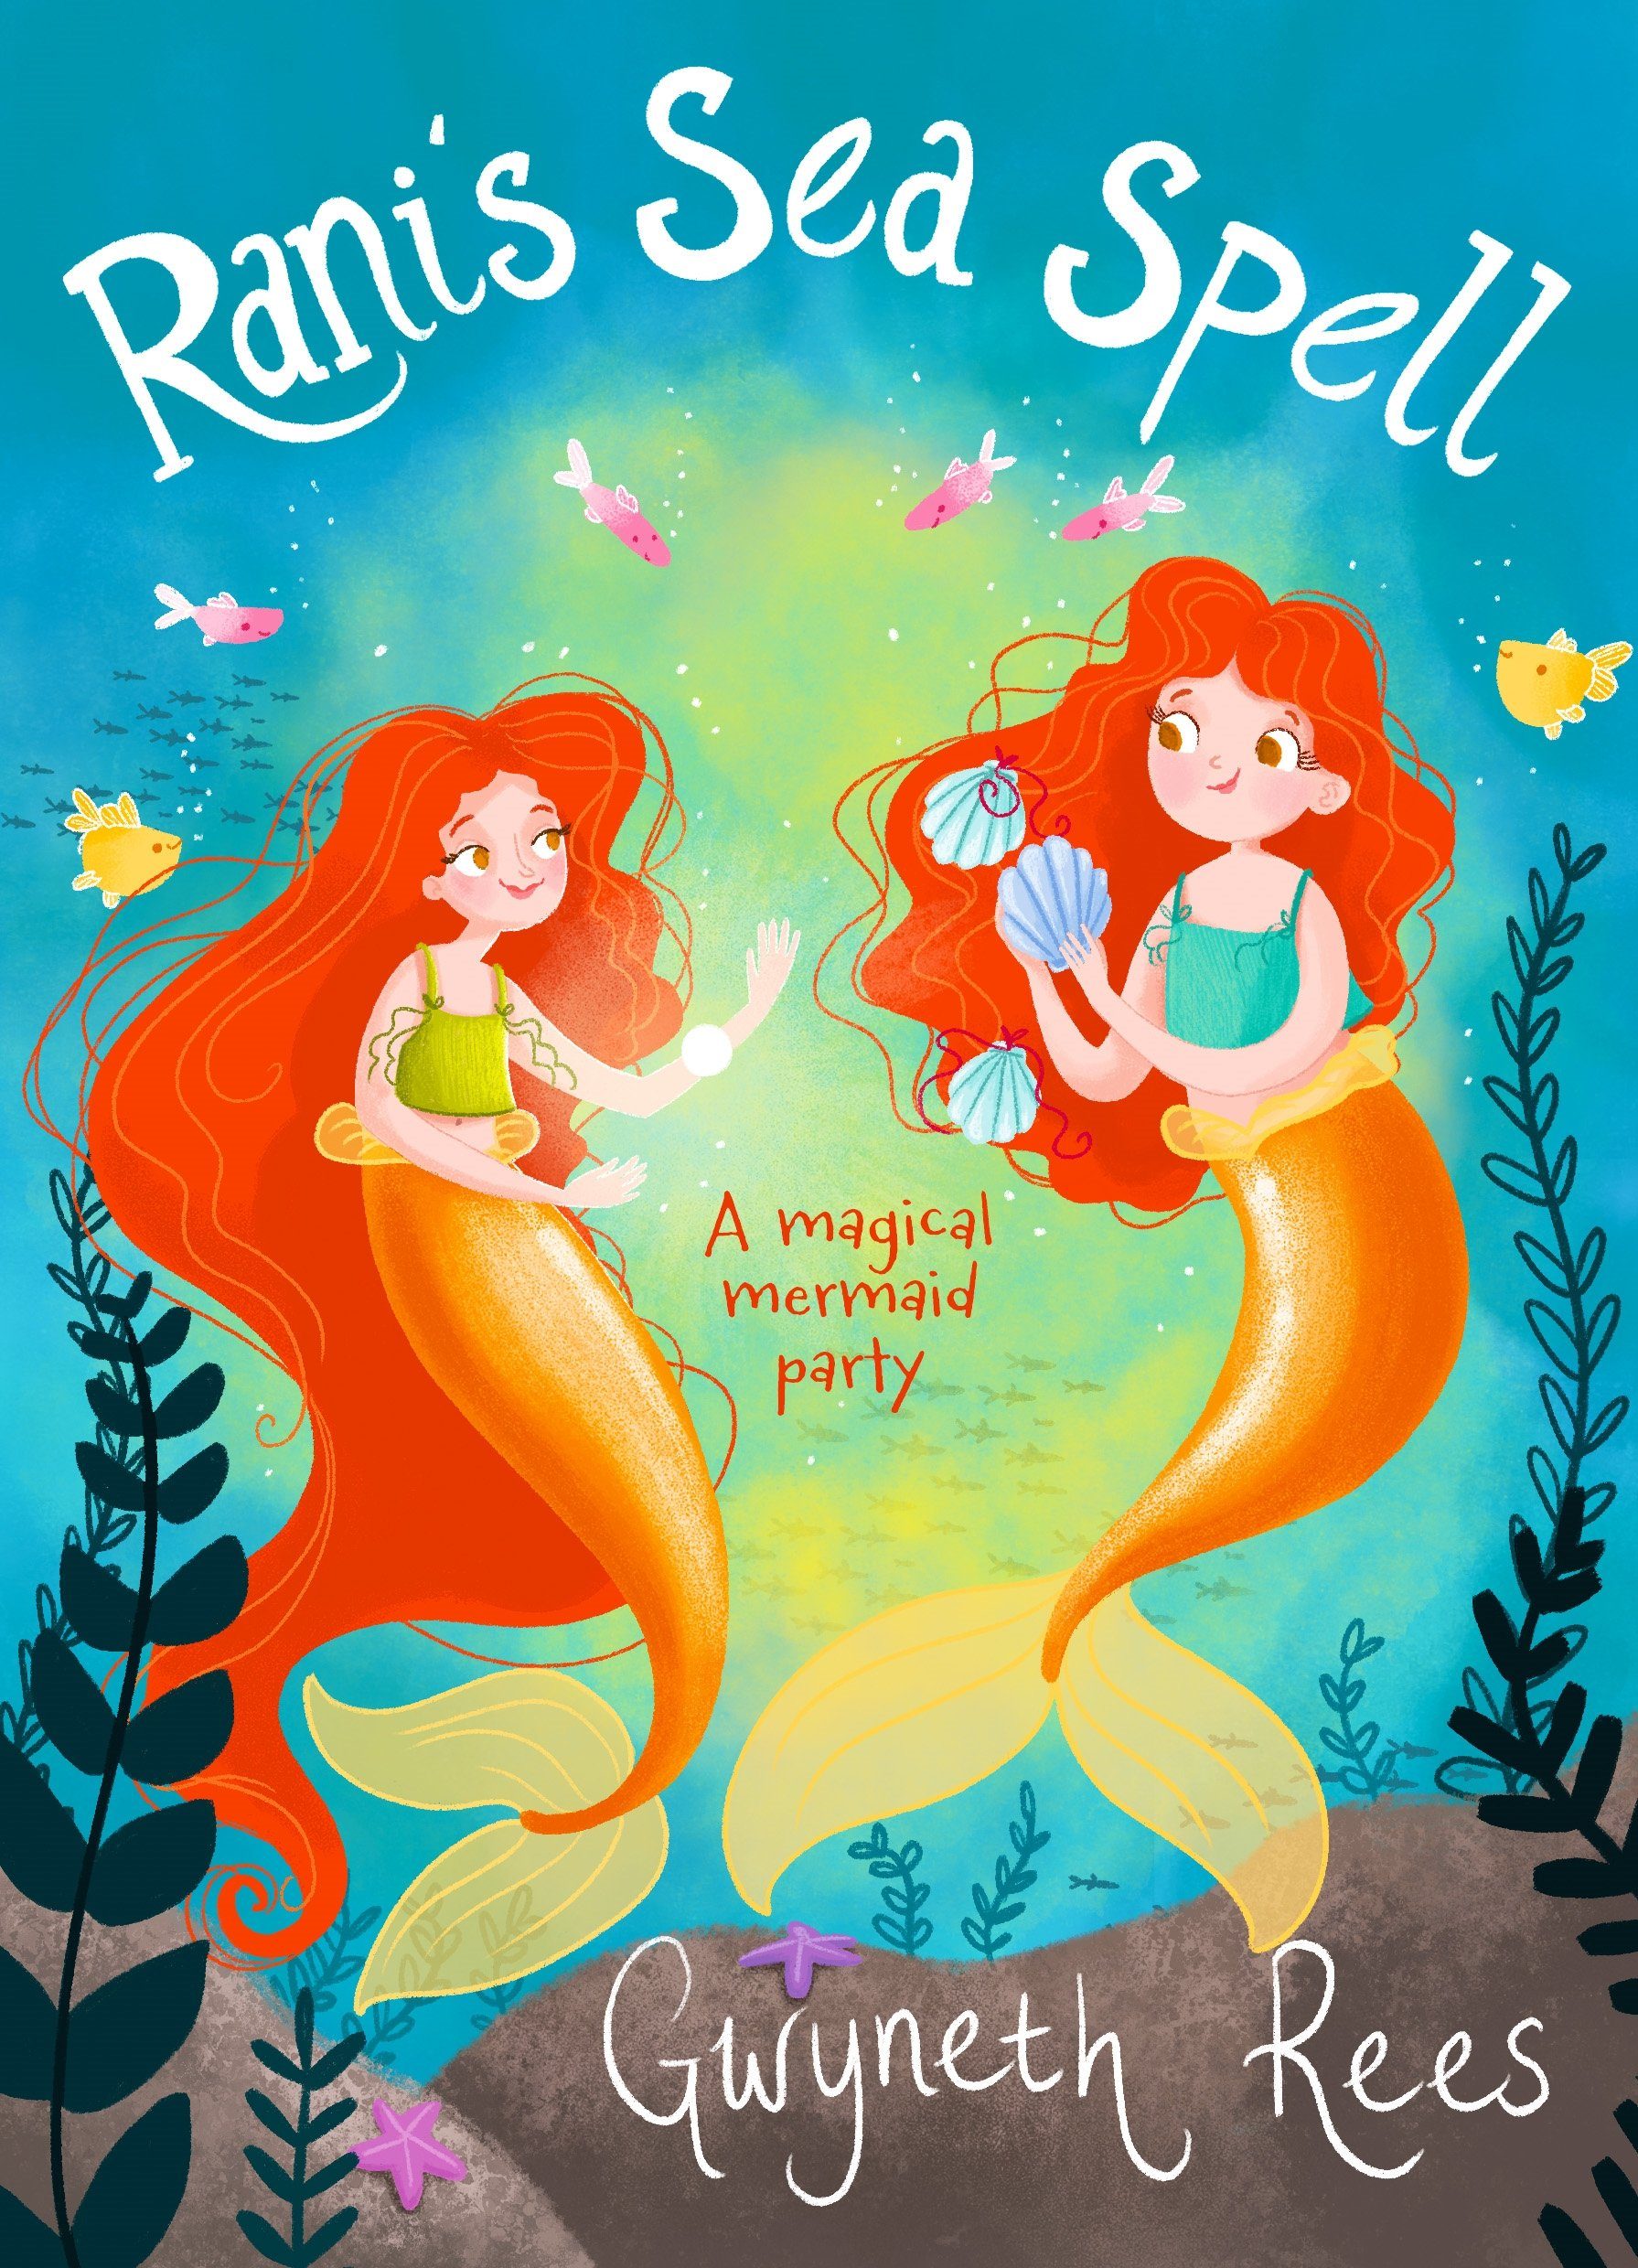 Rani's Sea Spell tales of the amber sea